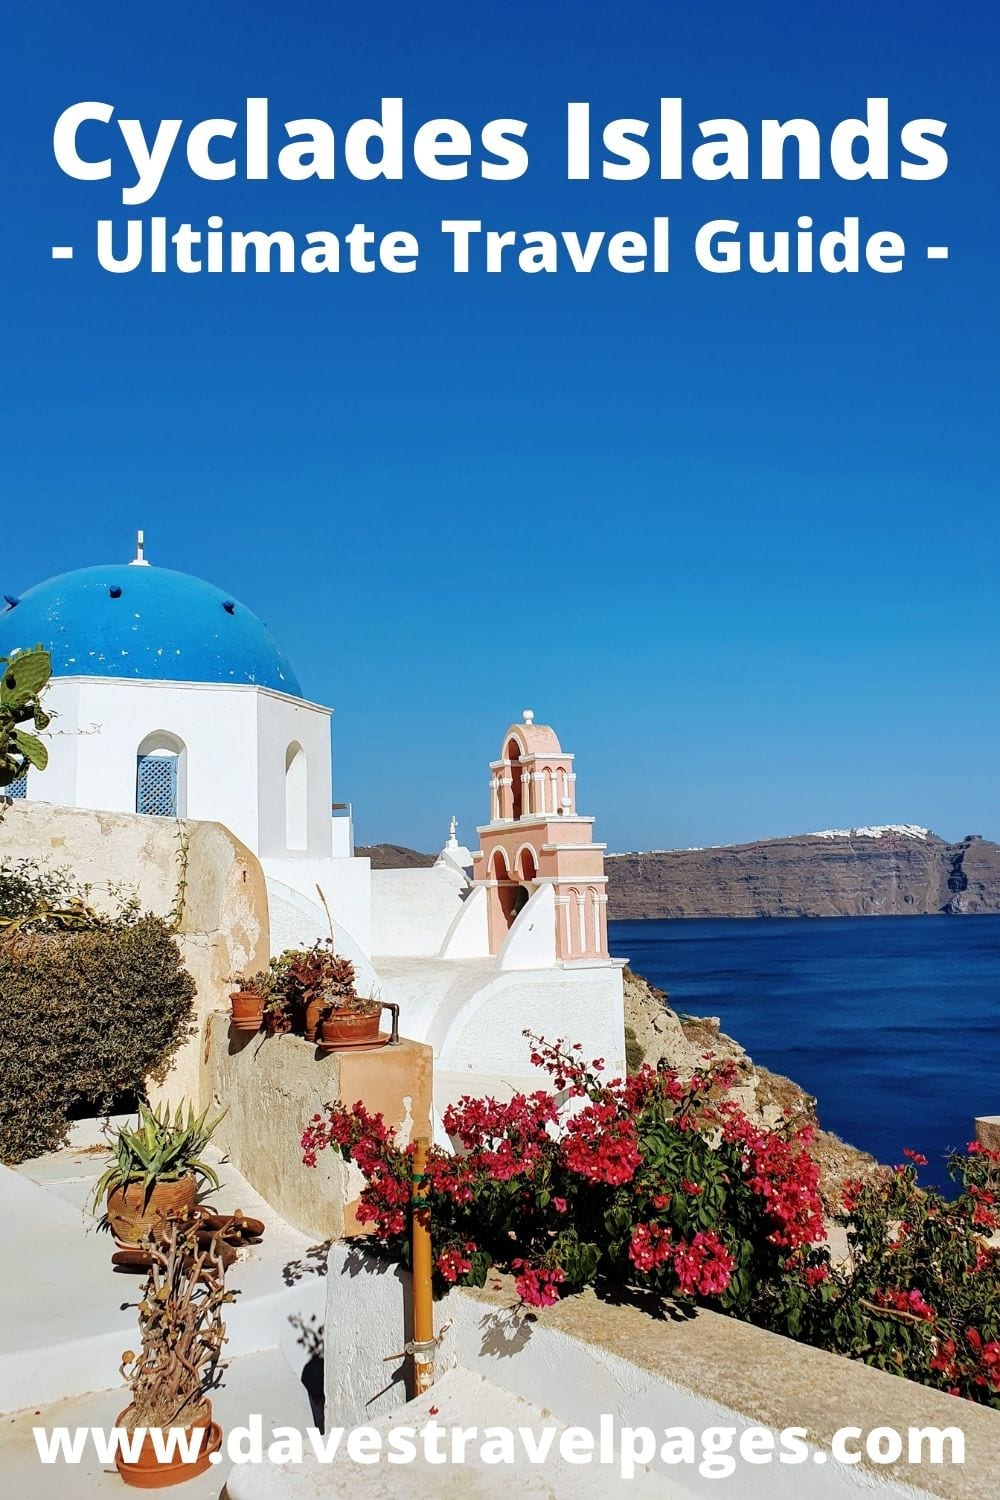 Cyclades Islands in Greece - Ultimate Travel Guide